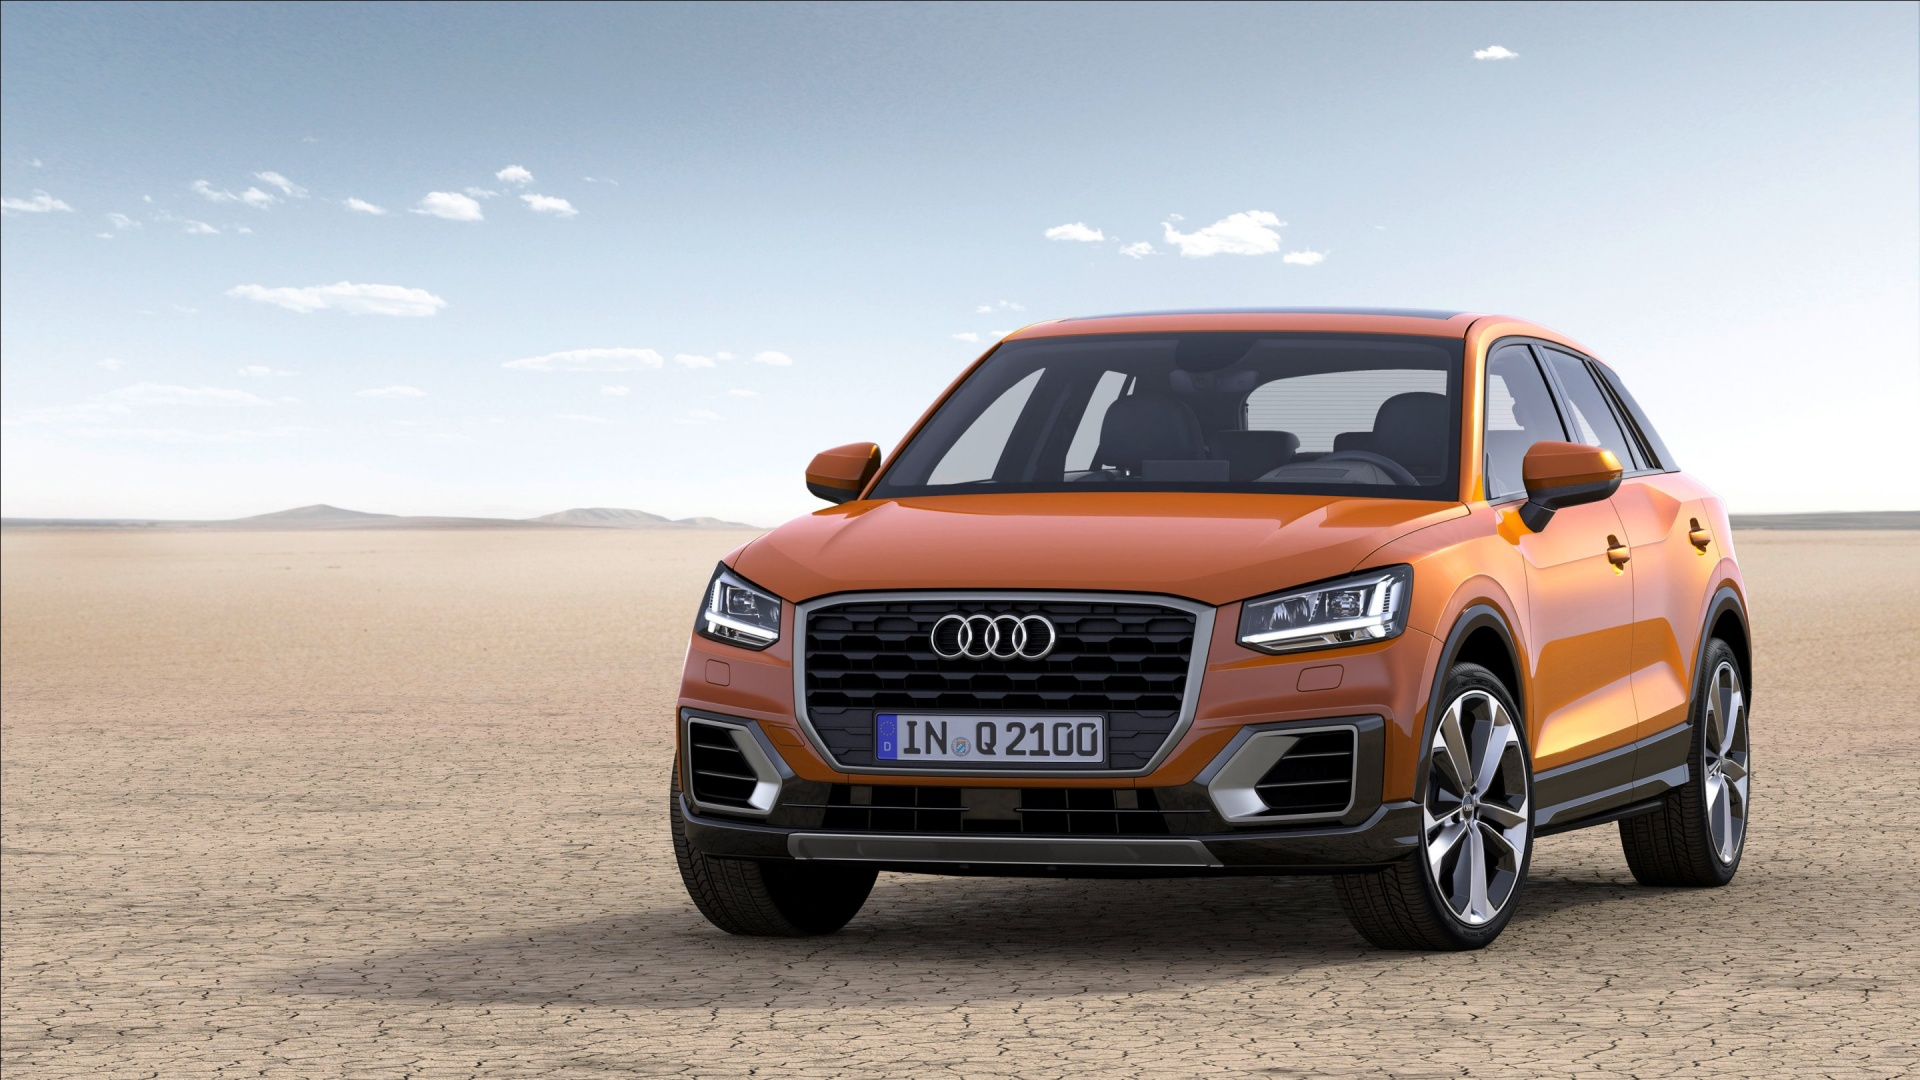 Audi Q2 In Action 2017 Wallpapers 1920x1080 578499